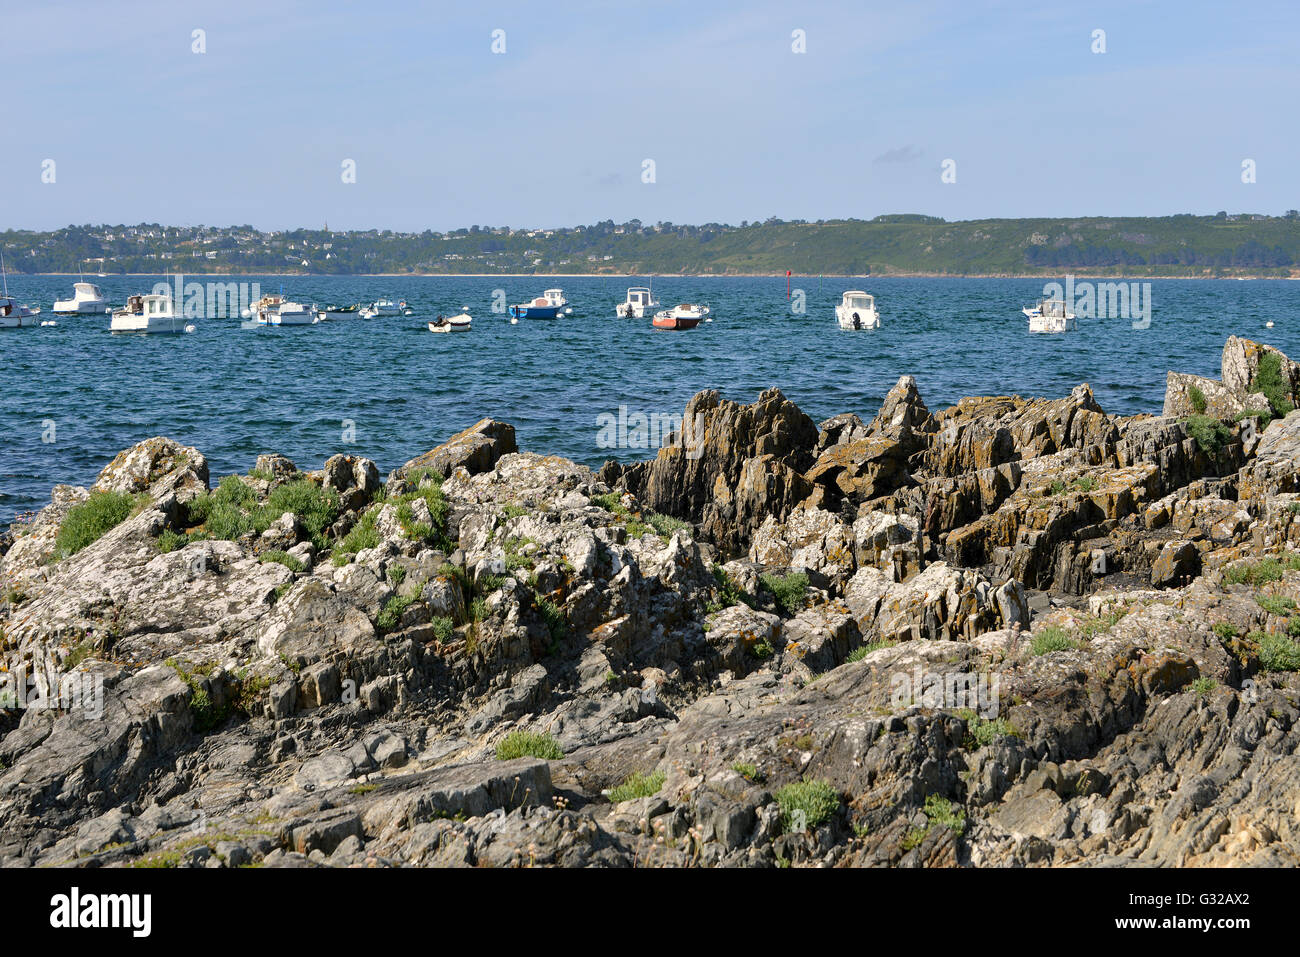 Coastline and marina of Trédrez-Locquémeau, commune in the Côtes-d'Armor department of Brittany in northwestern France Stock Photo